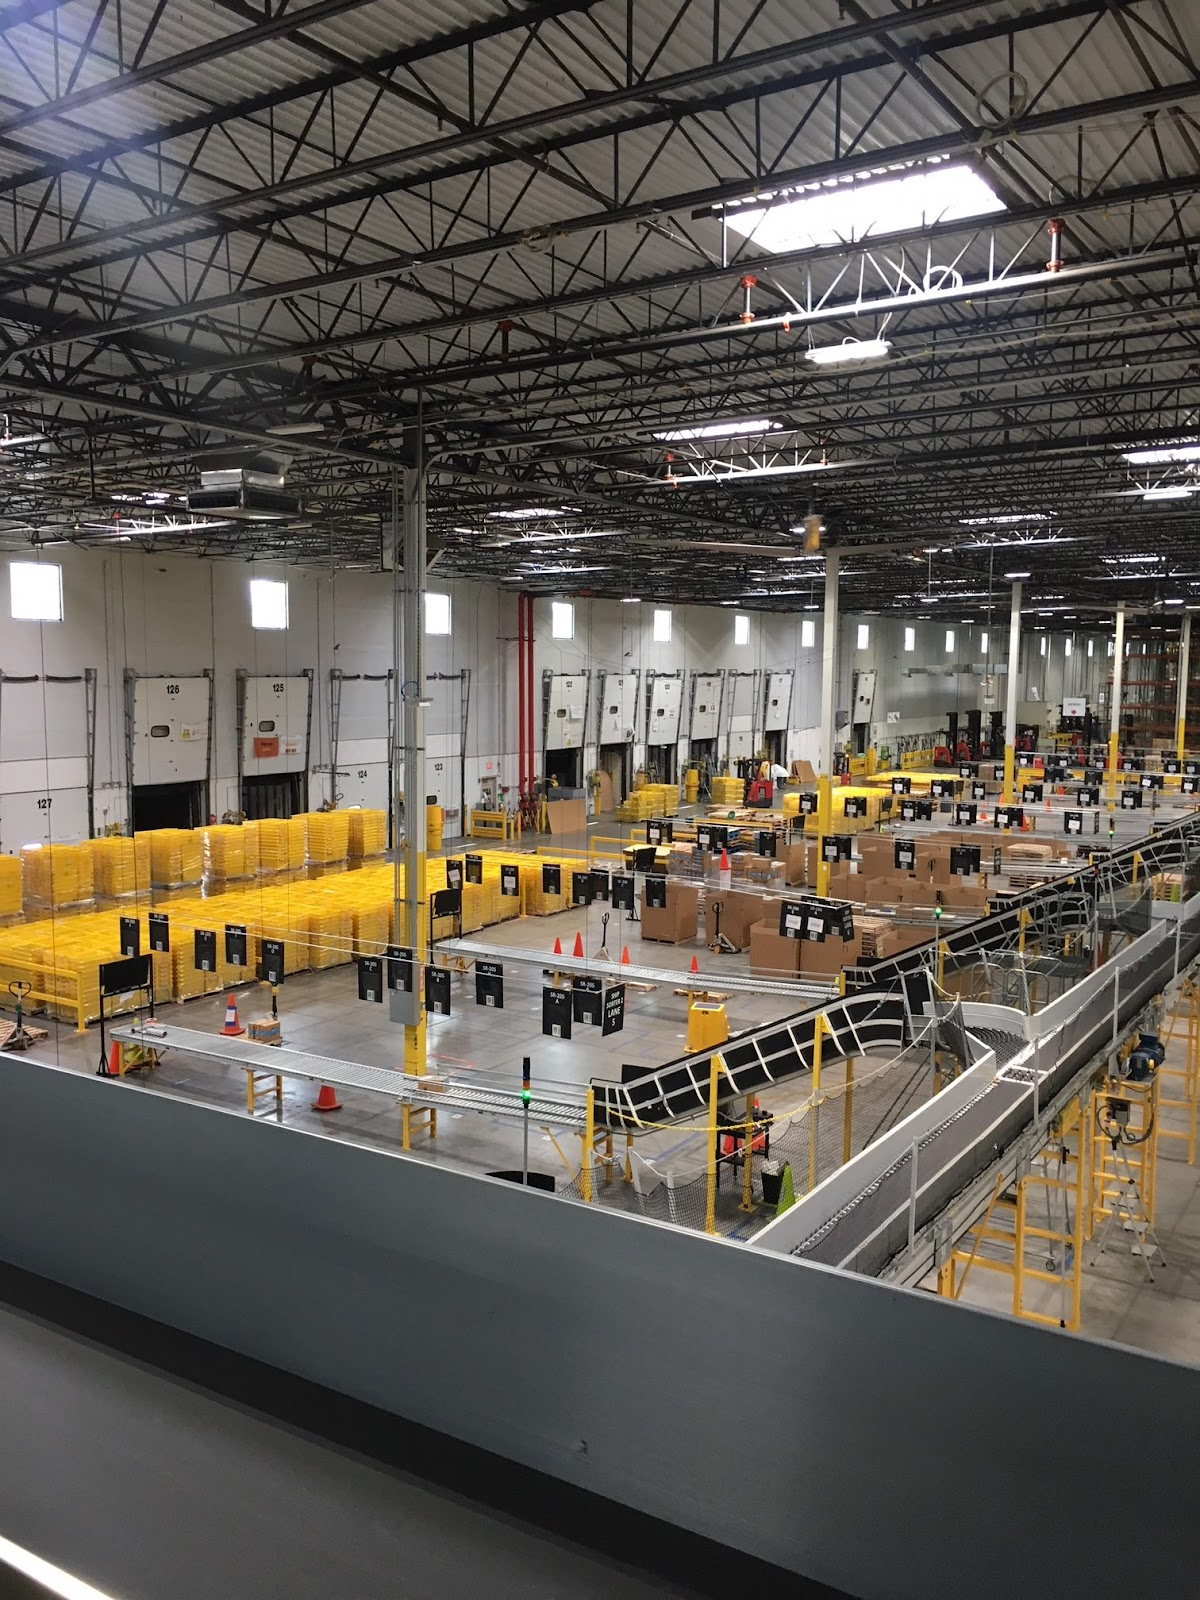 Inside the CHA1 Amazon Facility